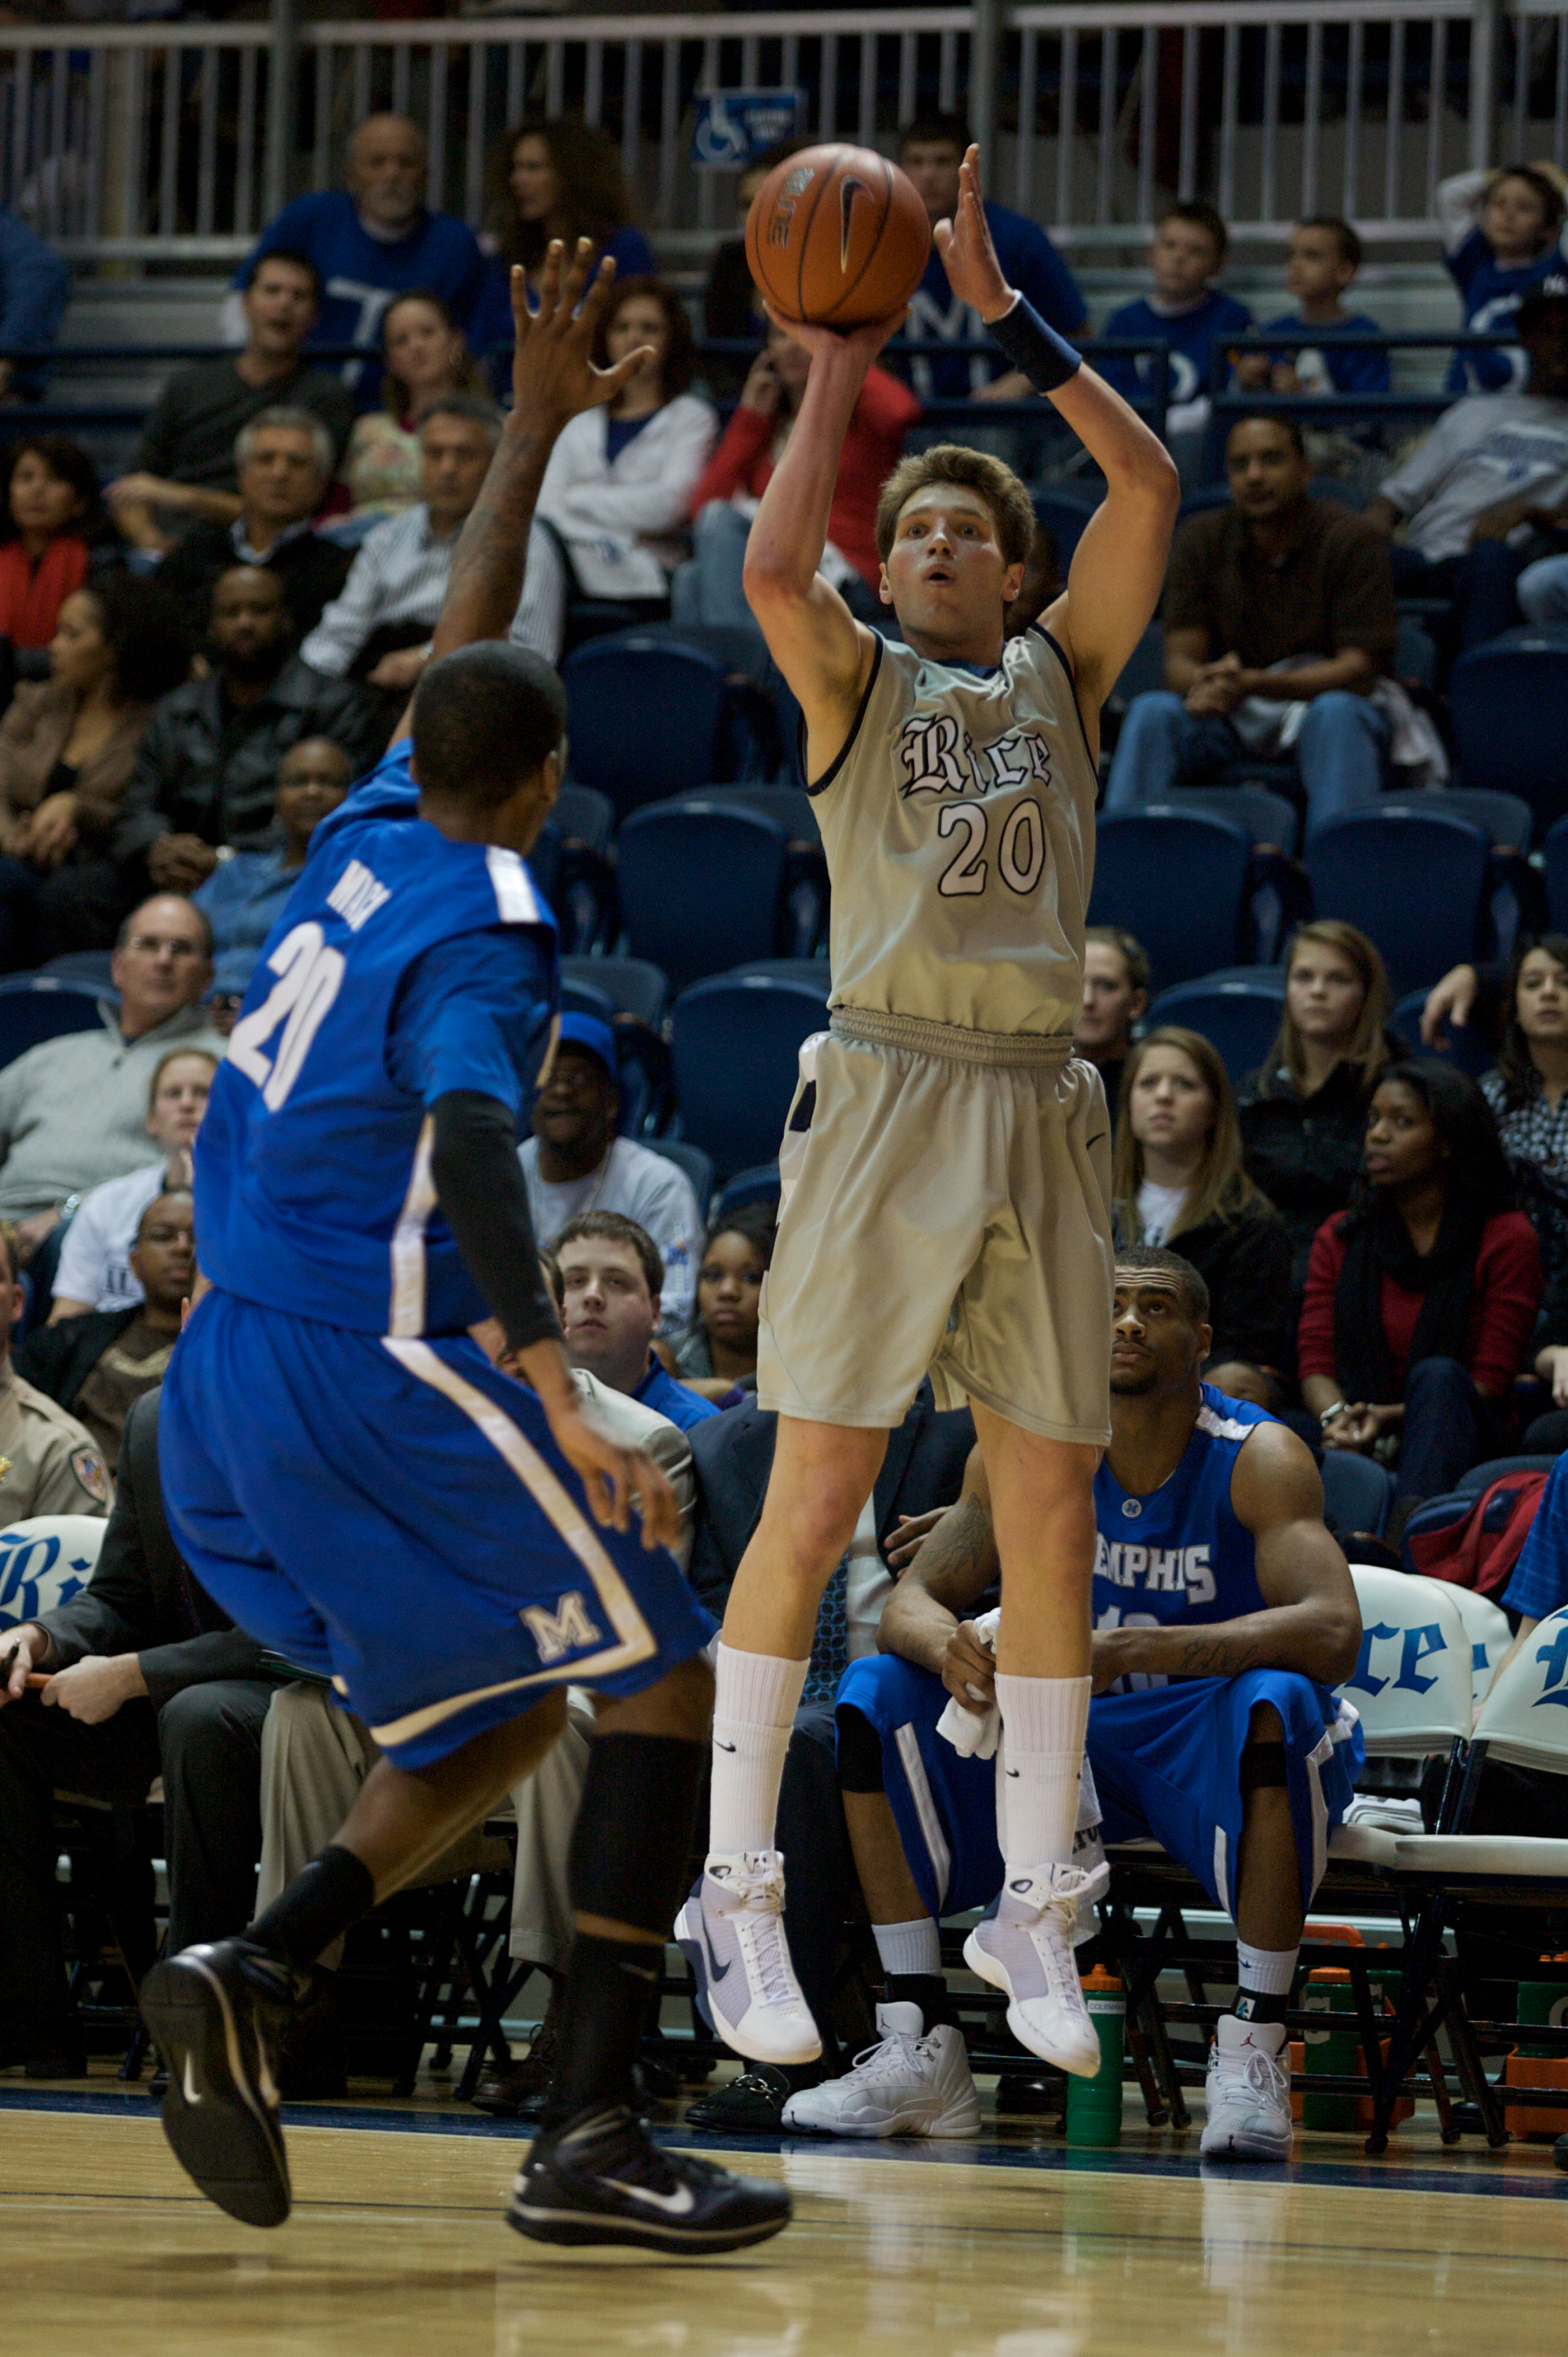 Rice sophomore forward Lucas Kuipers is coming off a season-high, 15-point effort against SMU earlier in the week.